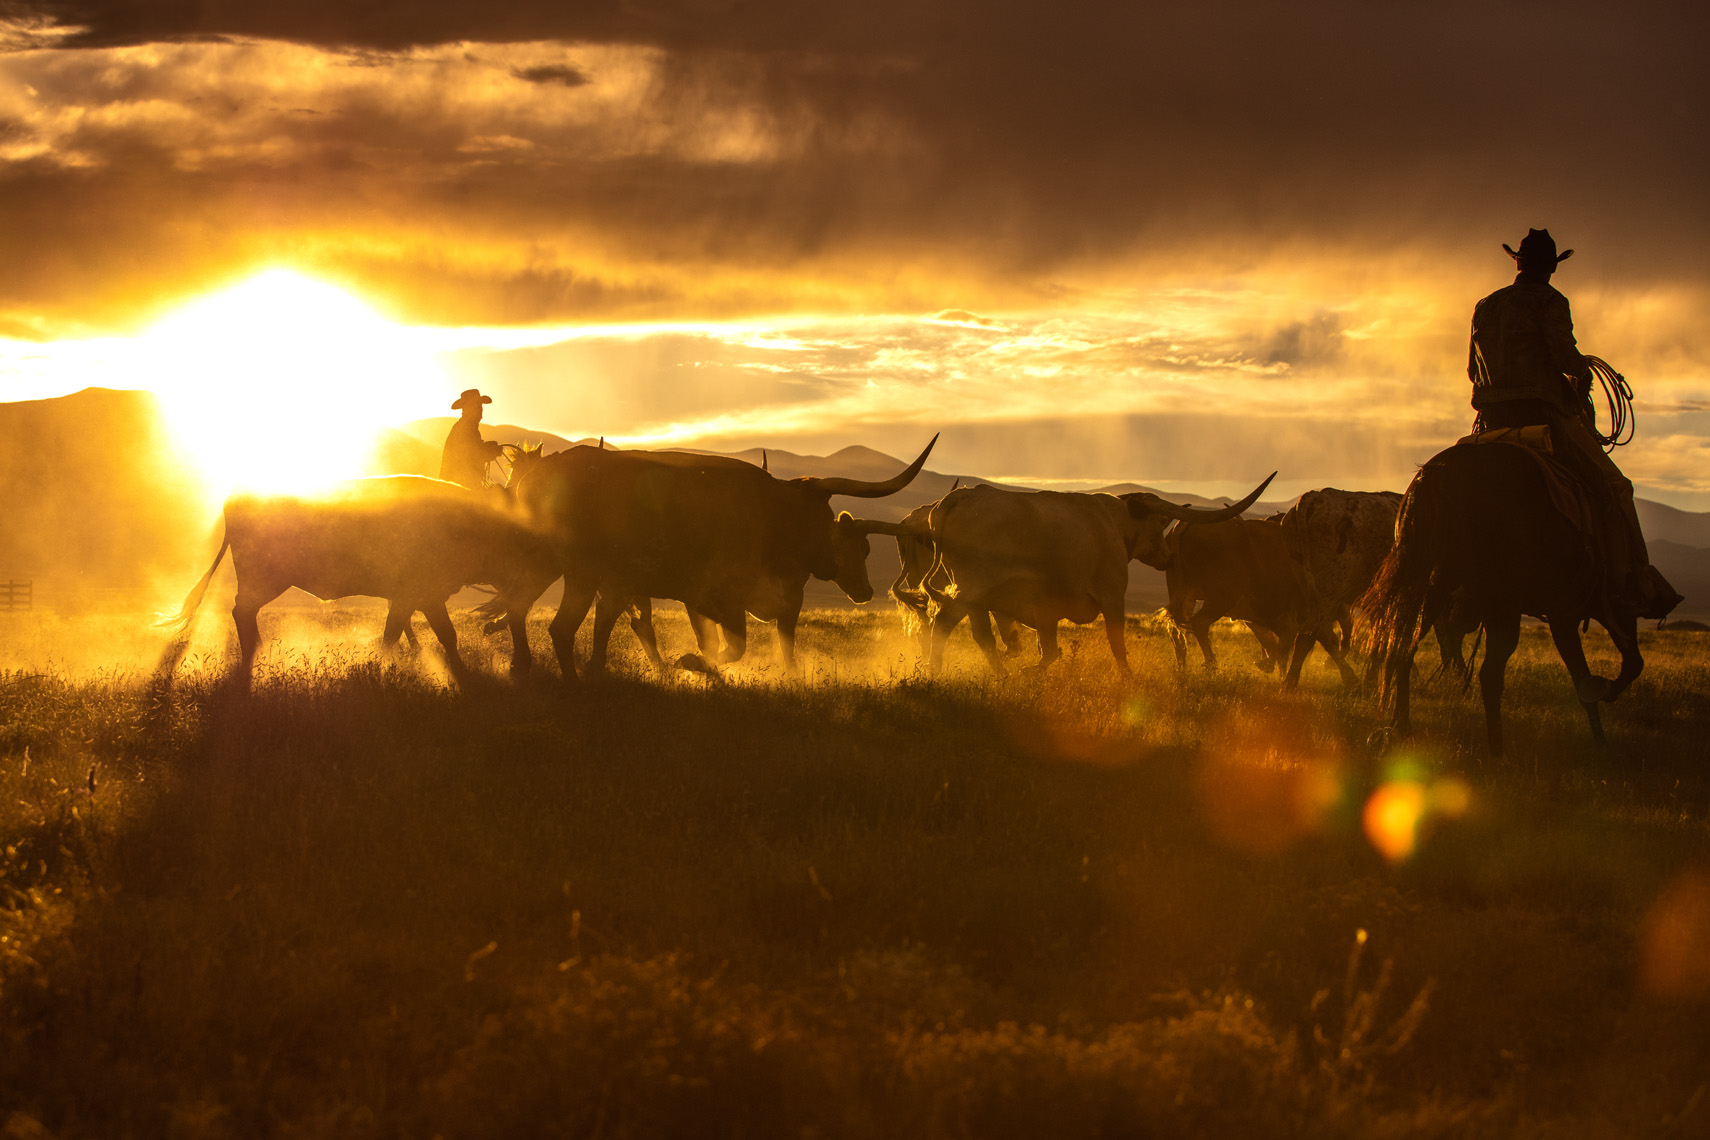 American West Photography: Horseback riders herding cattle.